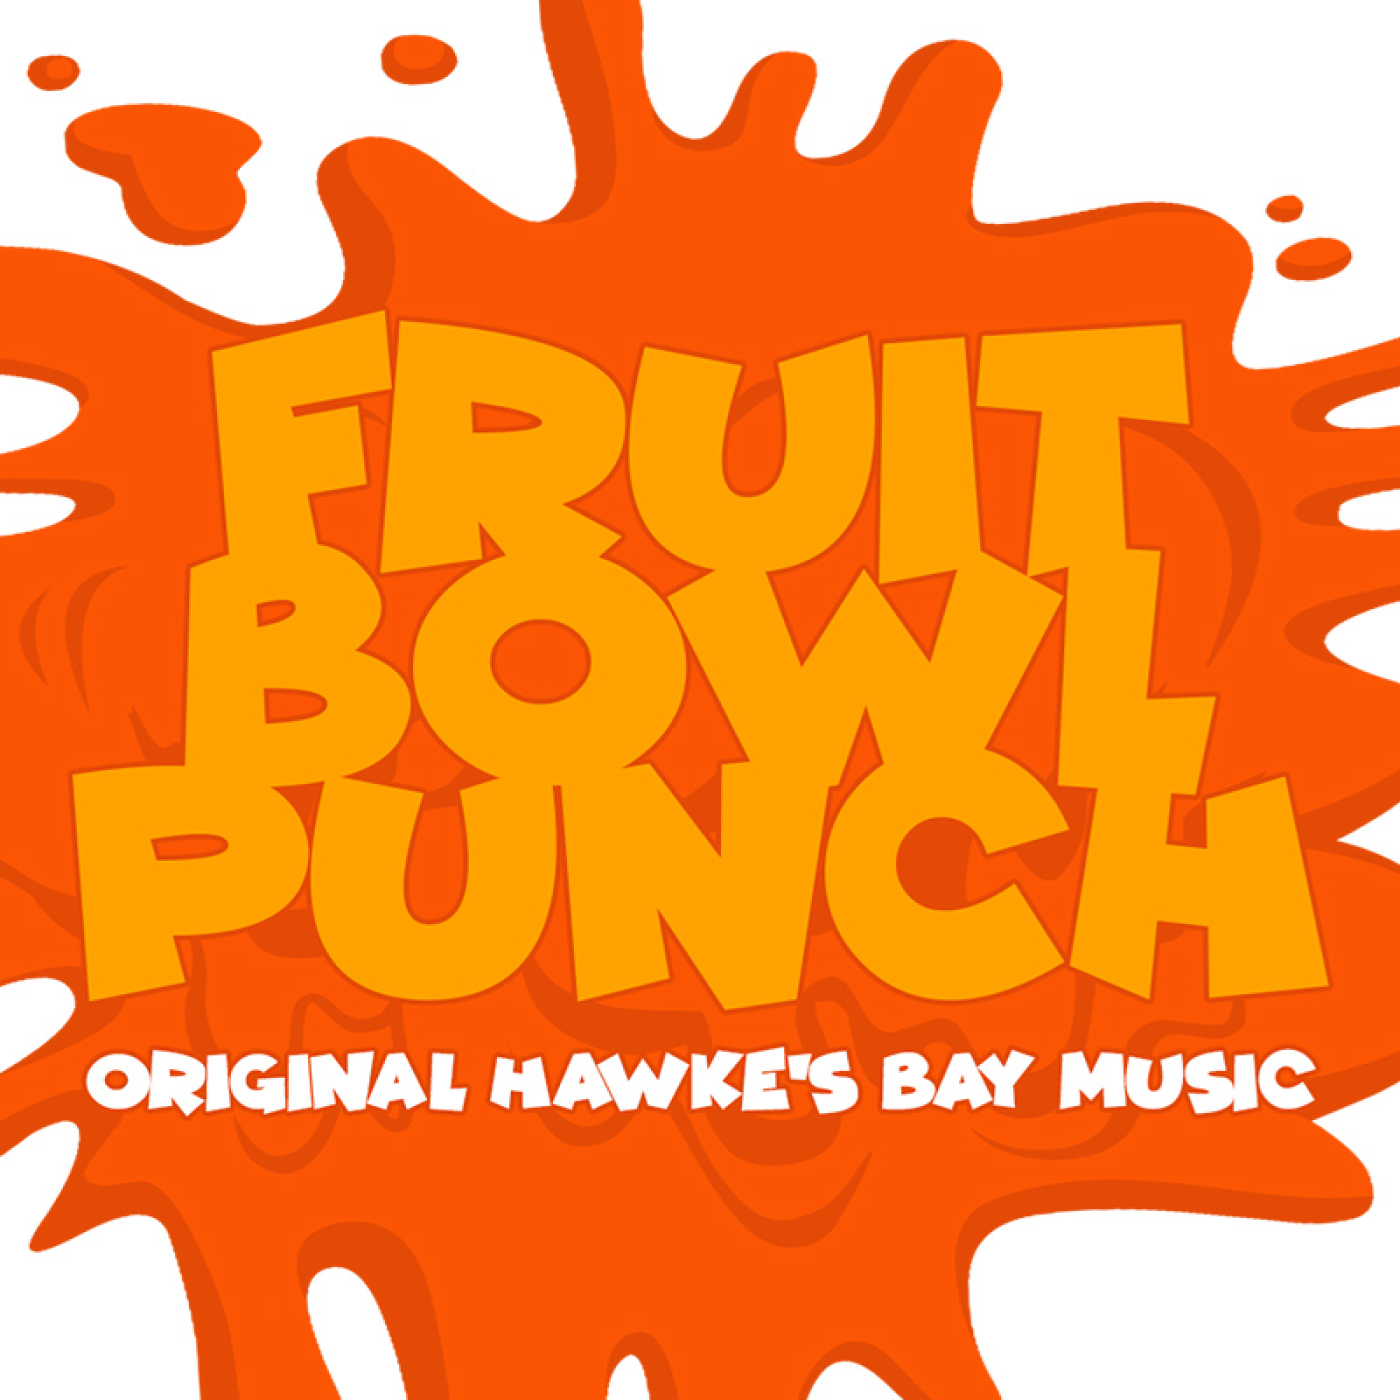 Fruit Bowl Punch-16-01-2020 - A (loosely) rock music themed show this week